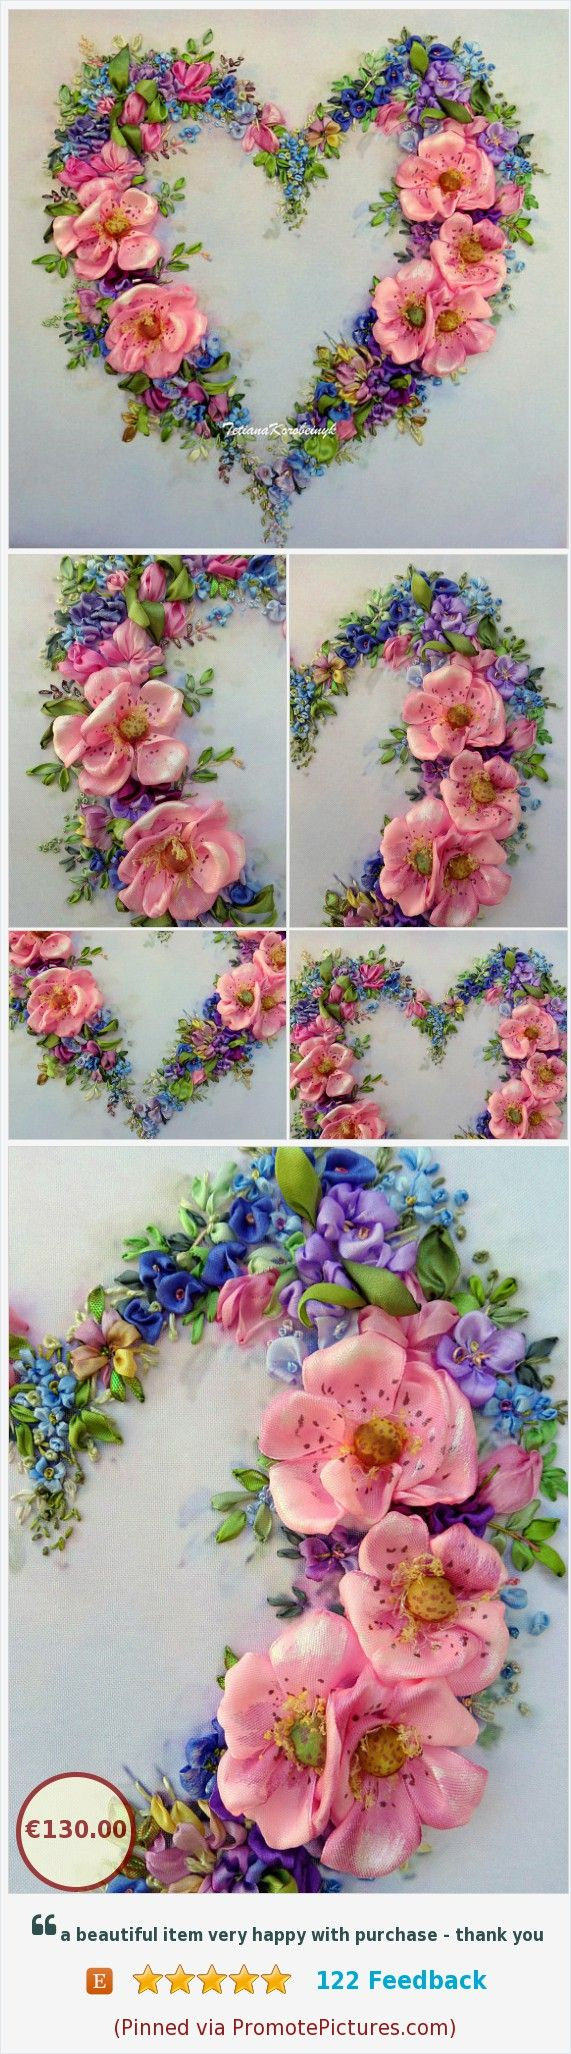 Floral heart ribbon embroidery kit for upholstery pillow embroidered